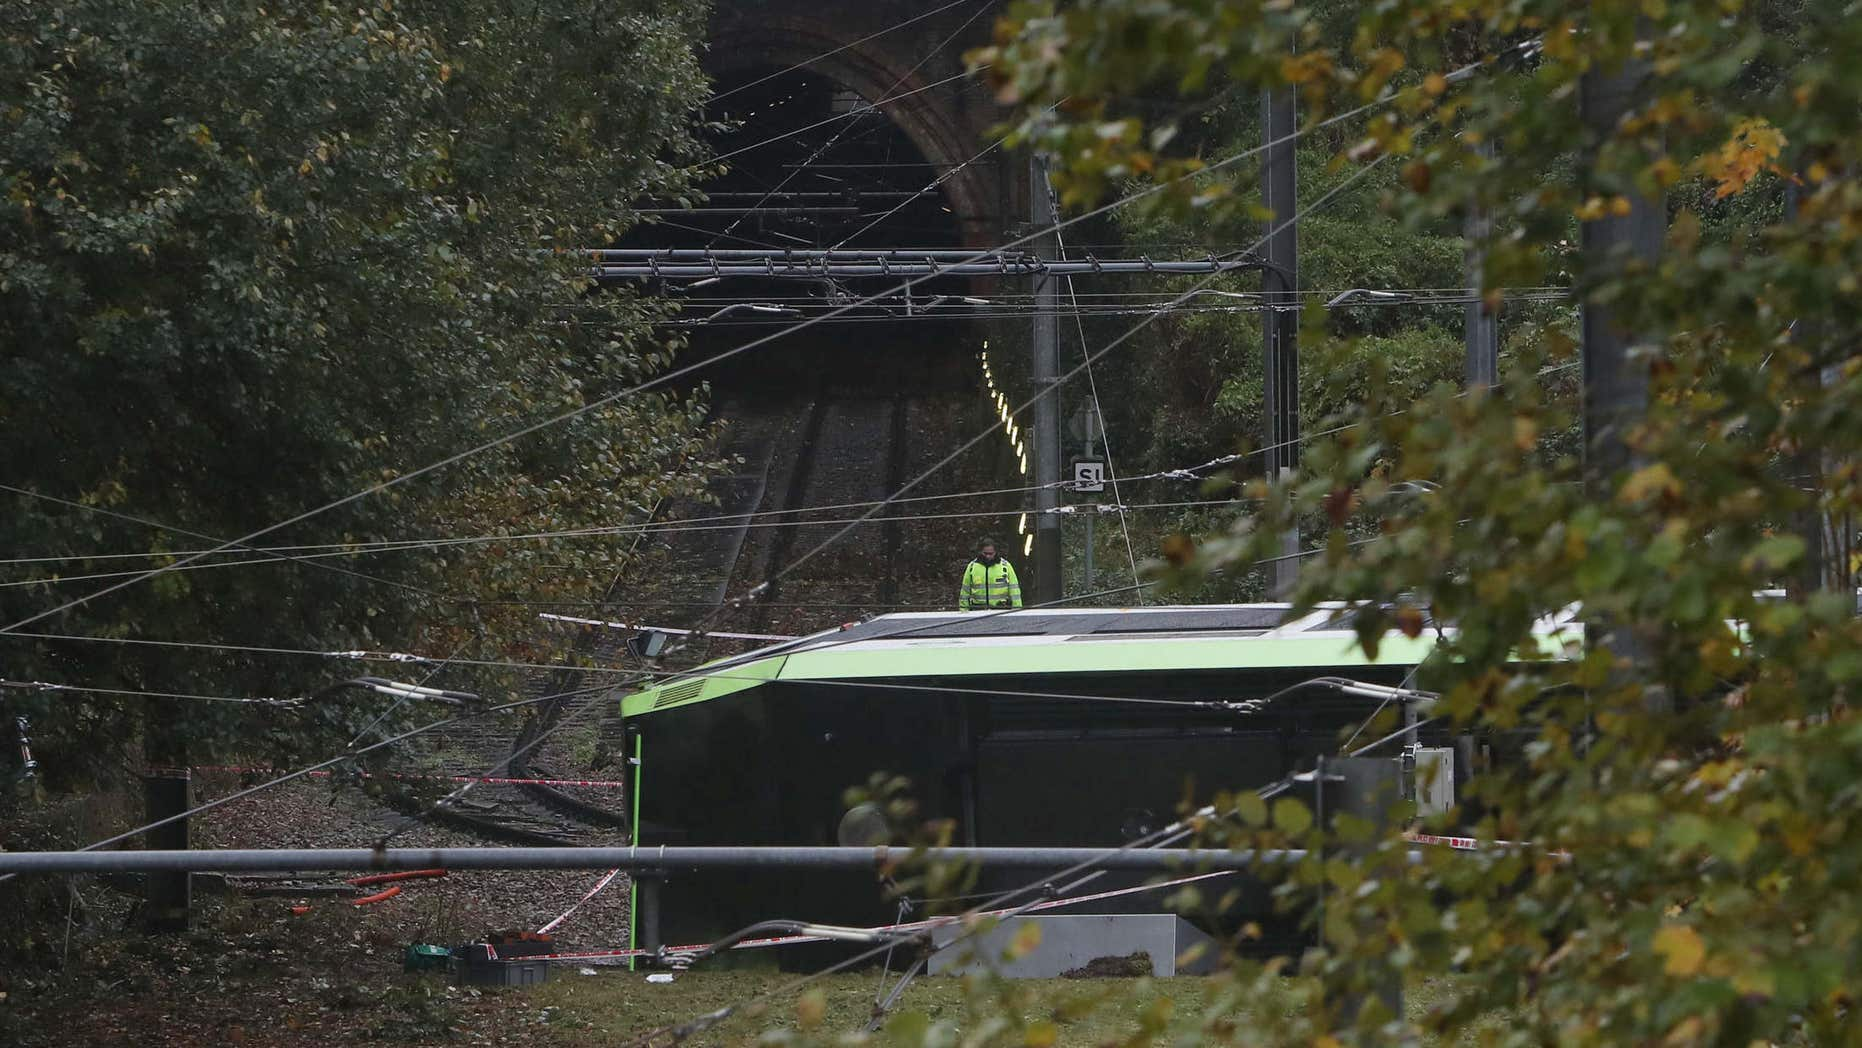 Nov. 9, 2016: An emergency services worker looks at a derailed tram in Croydon, south London.